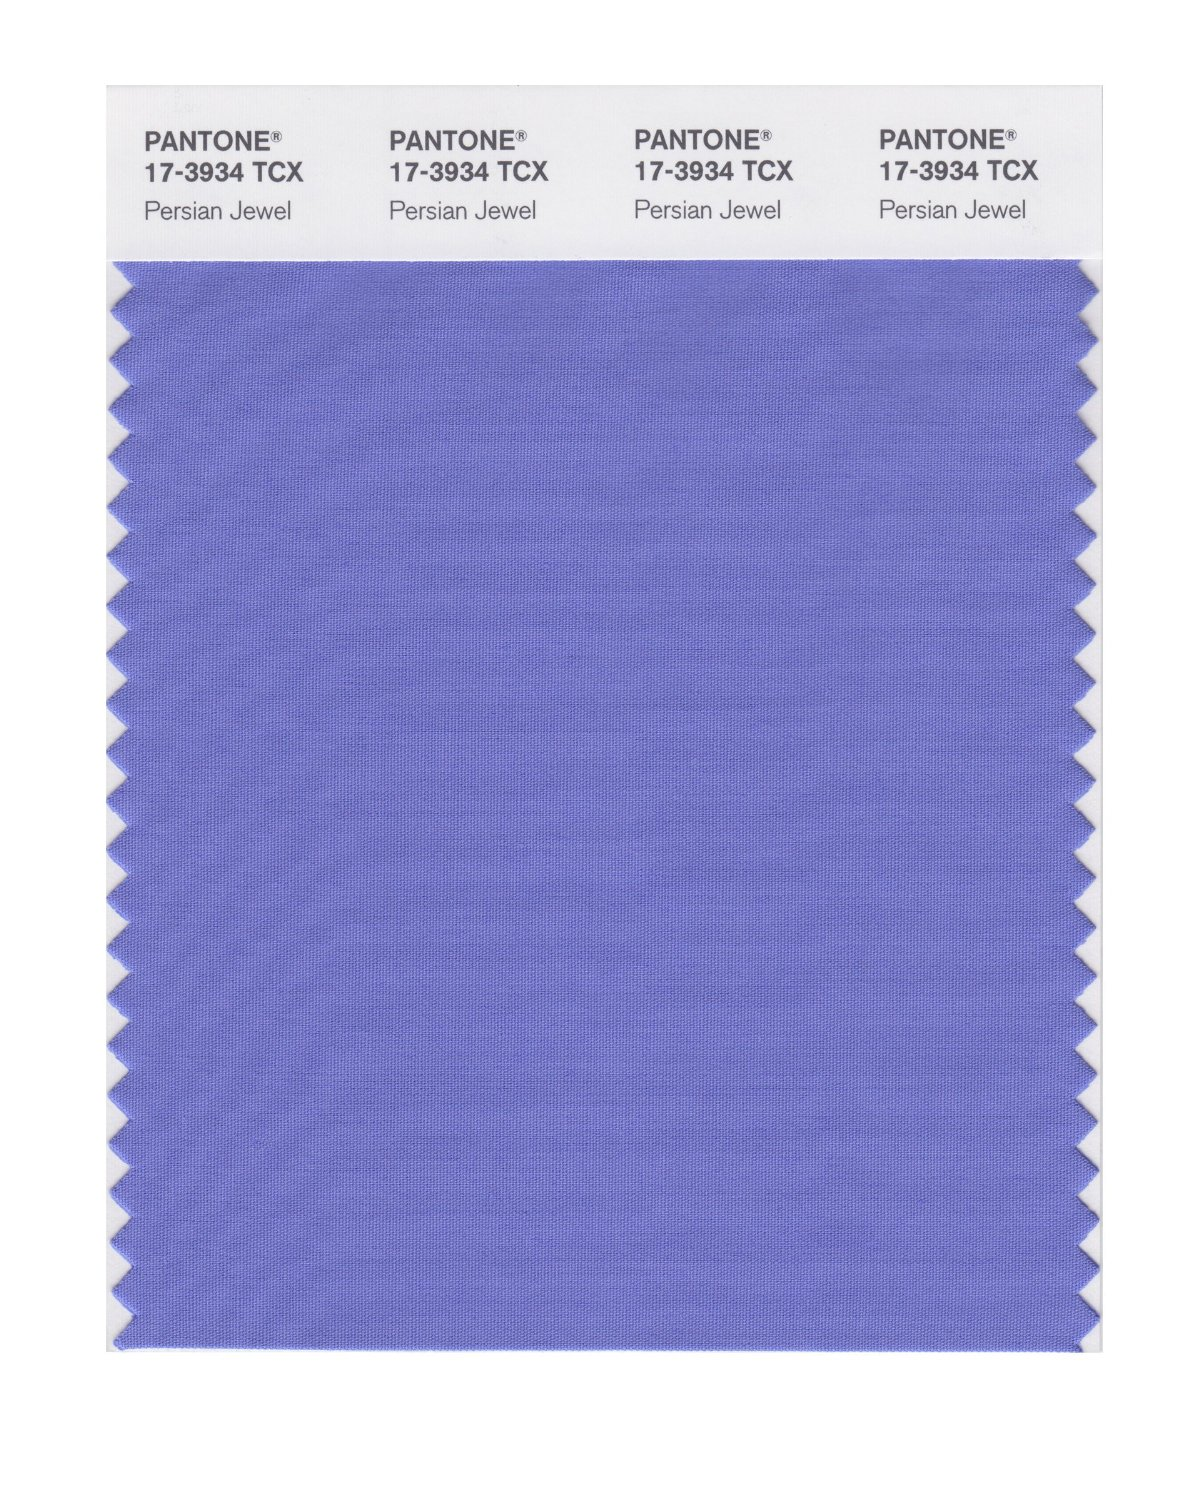 Pantone Smart Swatch 17-3934 Persian Jewel